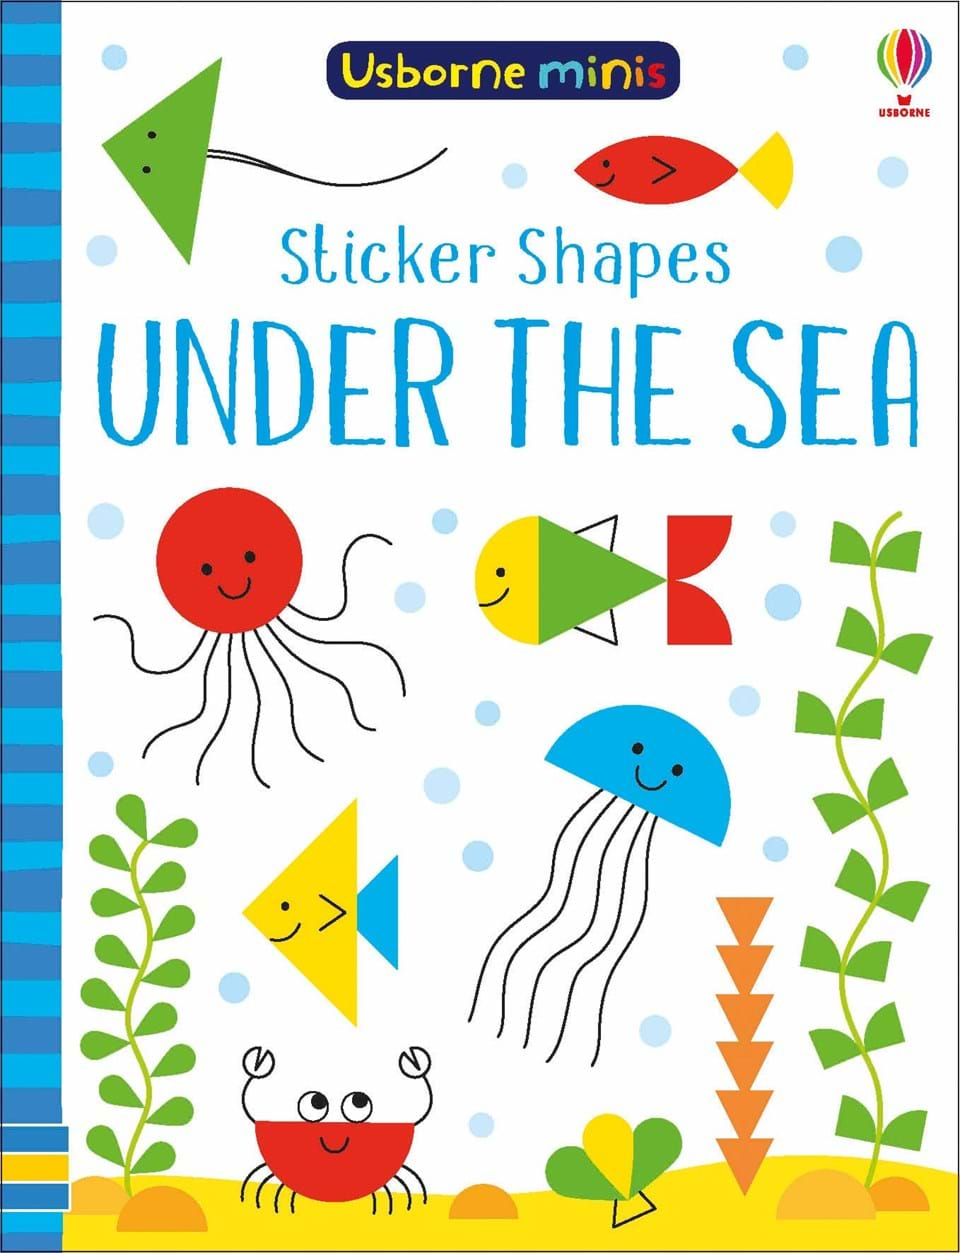 sticker shapes under the sea at usborne books at home